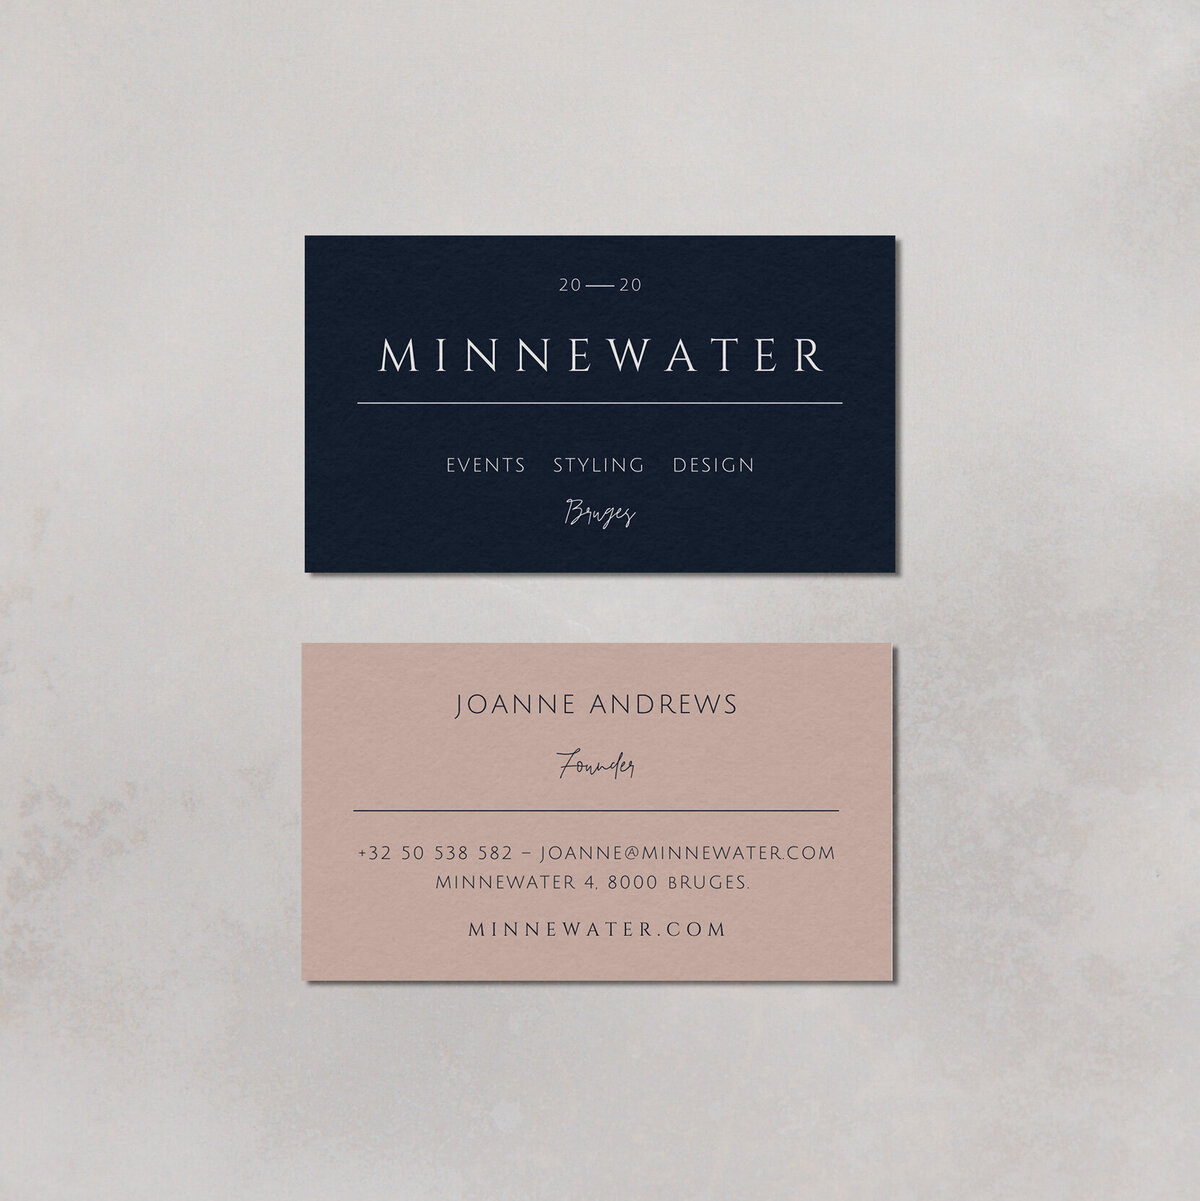 Minnewater-business-cards